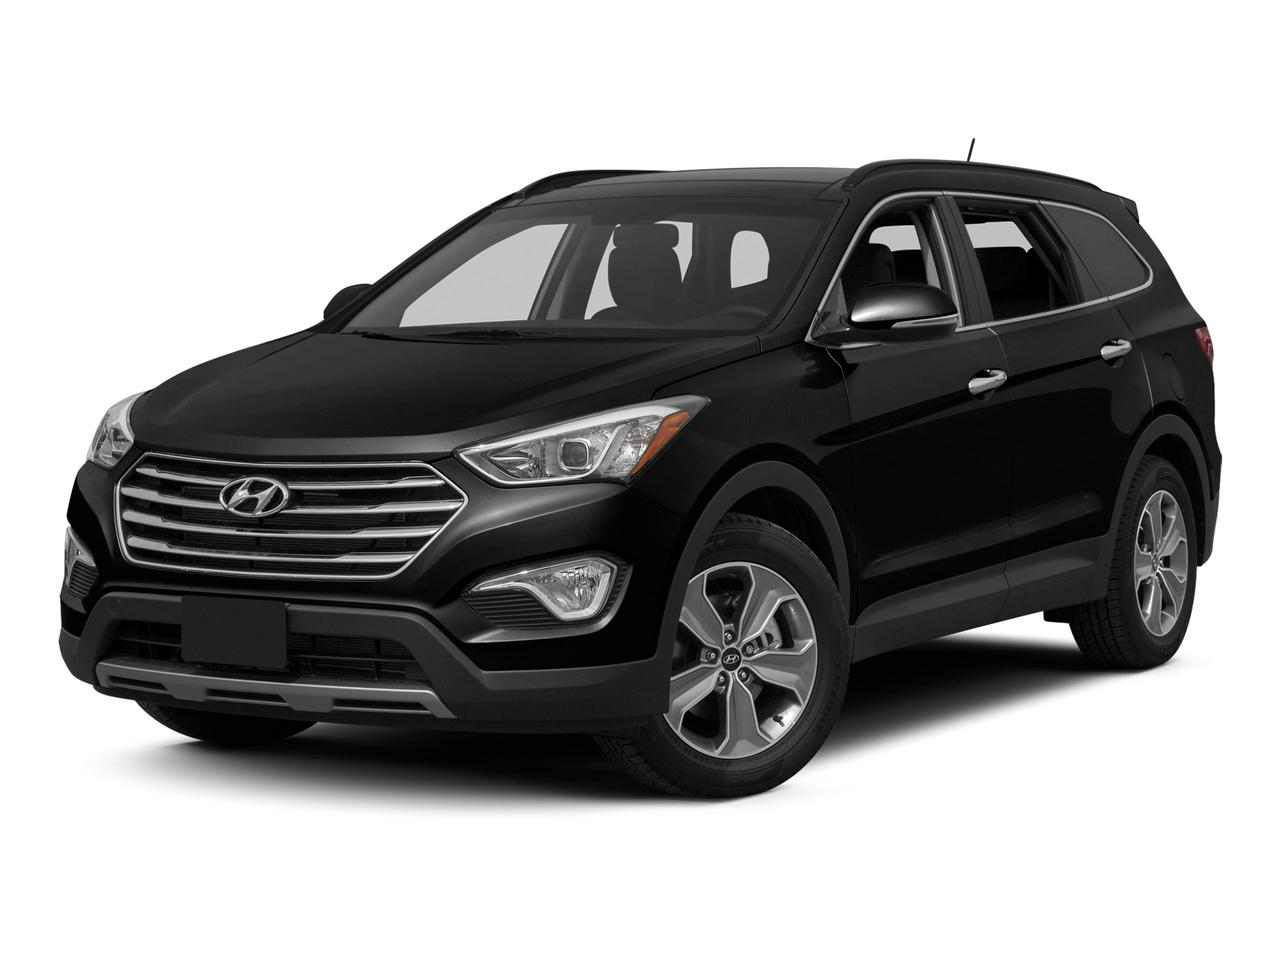 2015 Hyundai Santa Fe Vehicle Photo in Odessa, TX 79762